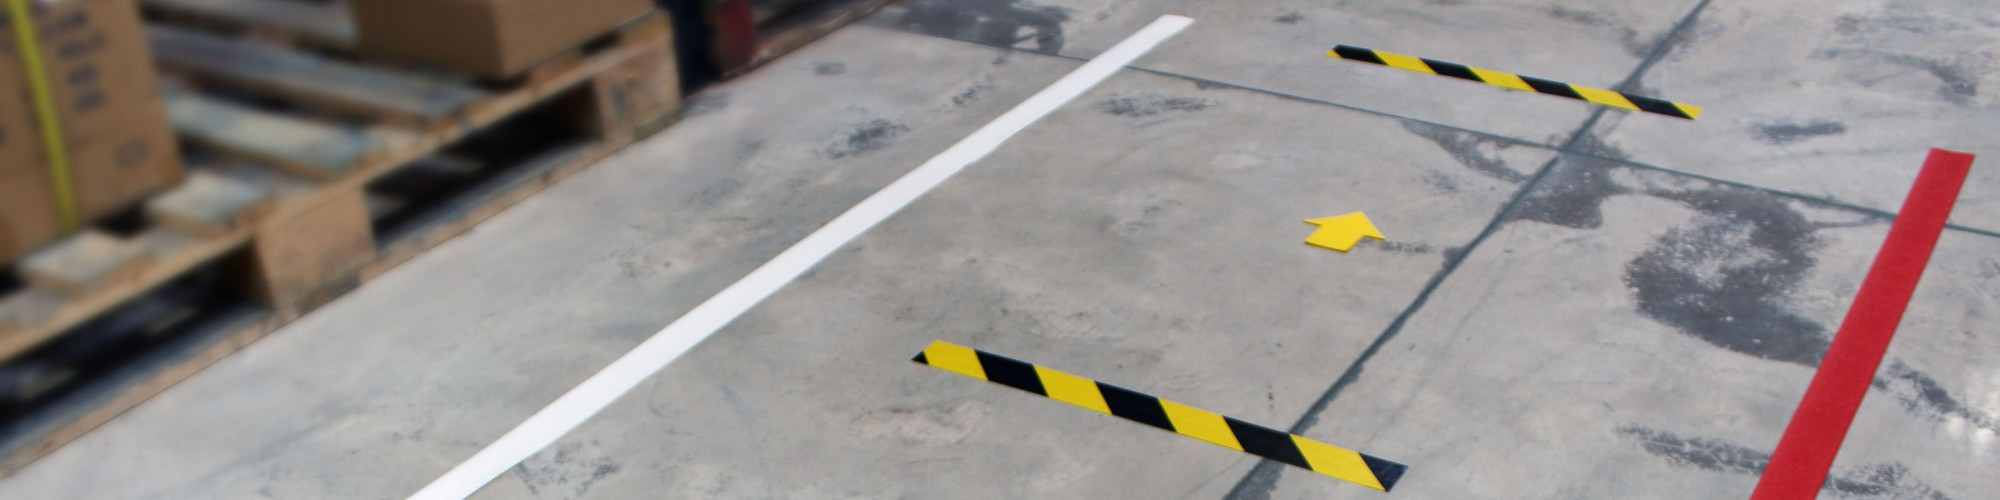 markaline Industrial Line Marking Tape